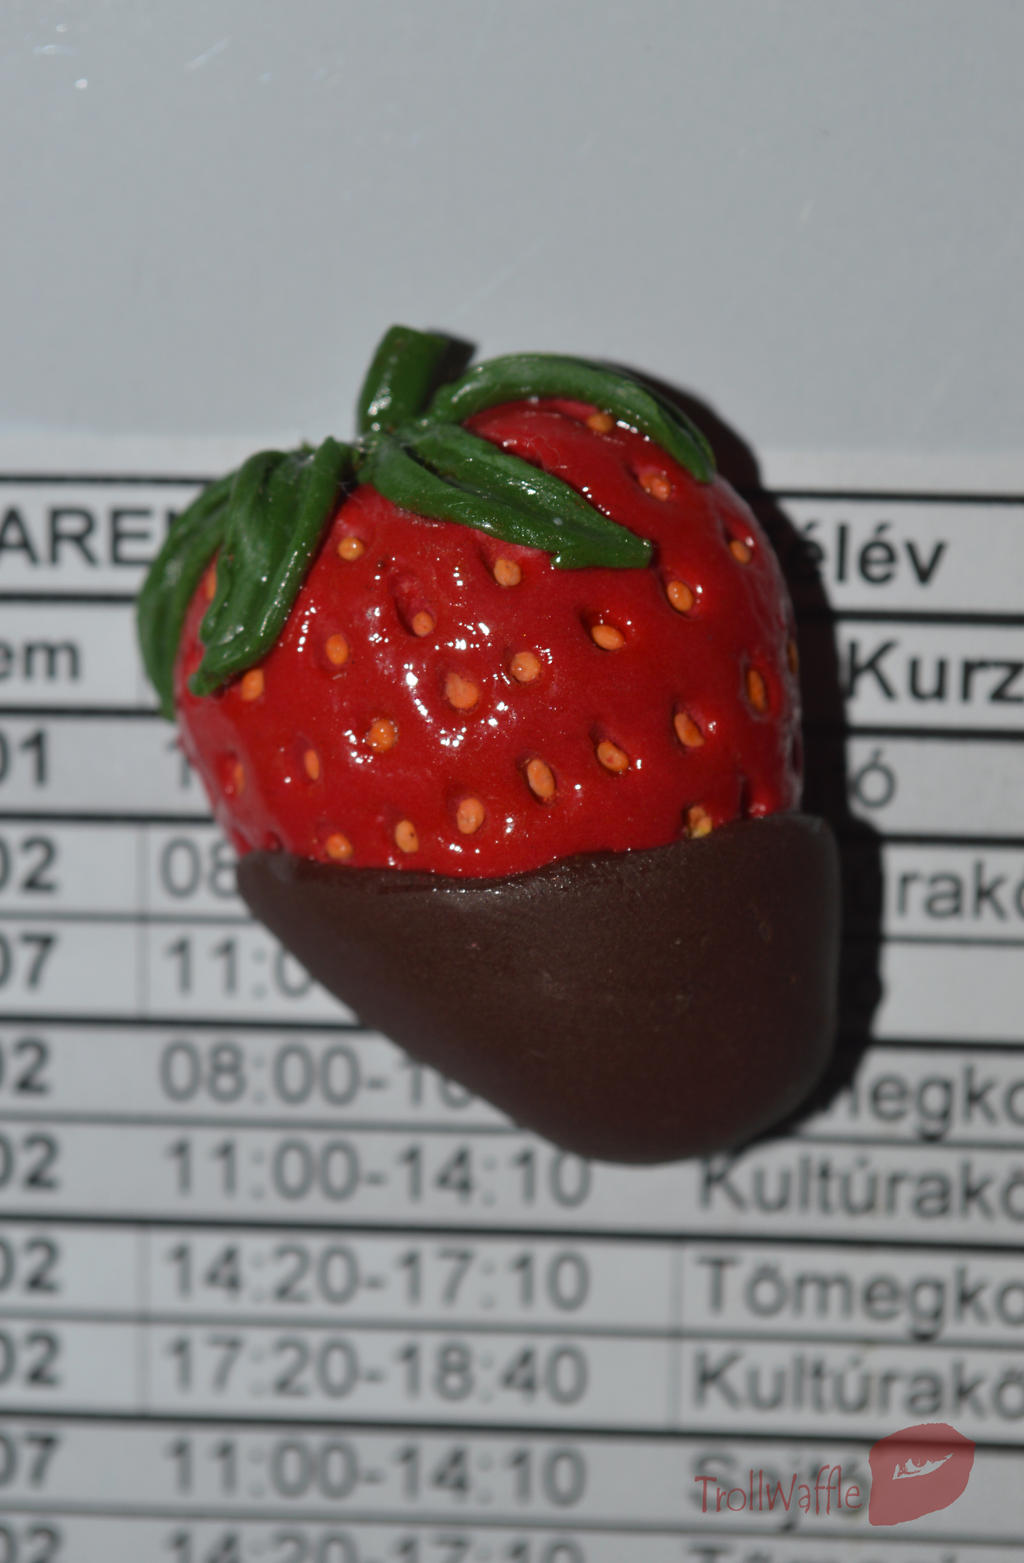 Chocolate-Covered Strawberry magnet by trollwaffle